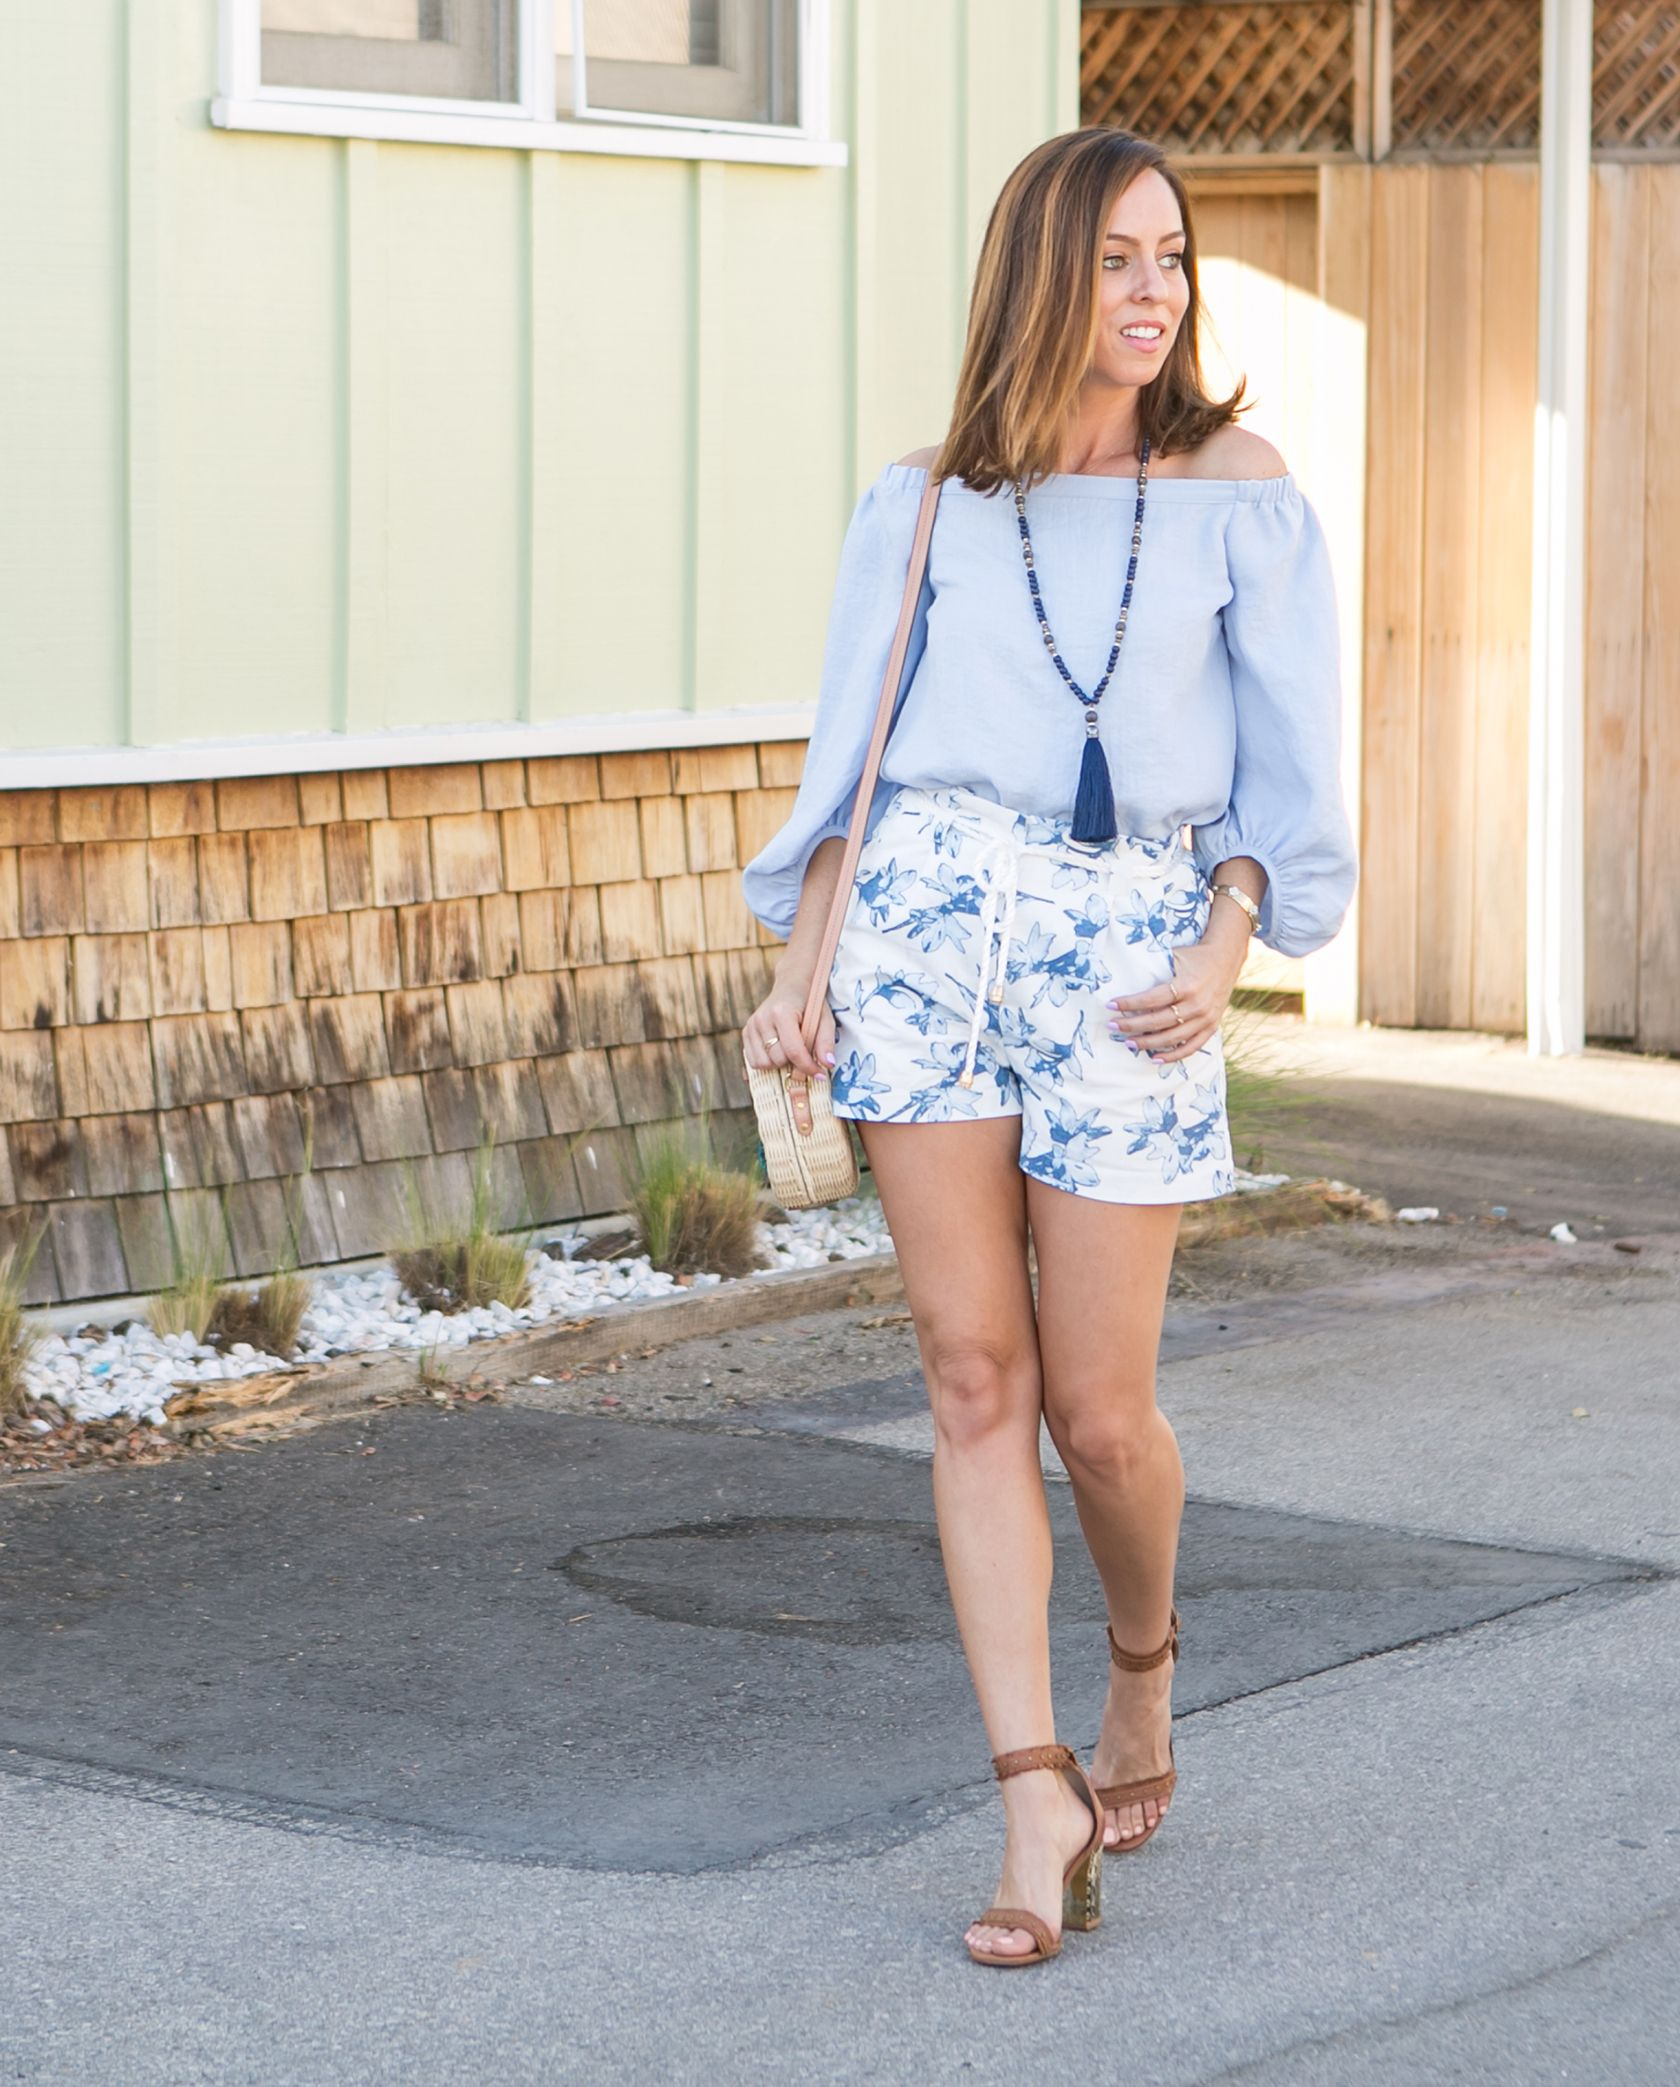 c77ae84daf Sydne Style shows how to wear floral shorts at night for summer outfit ideas